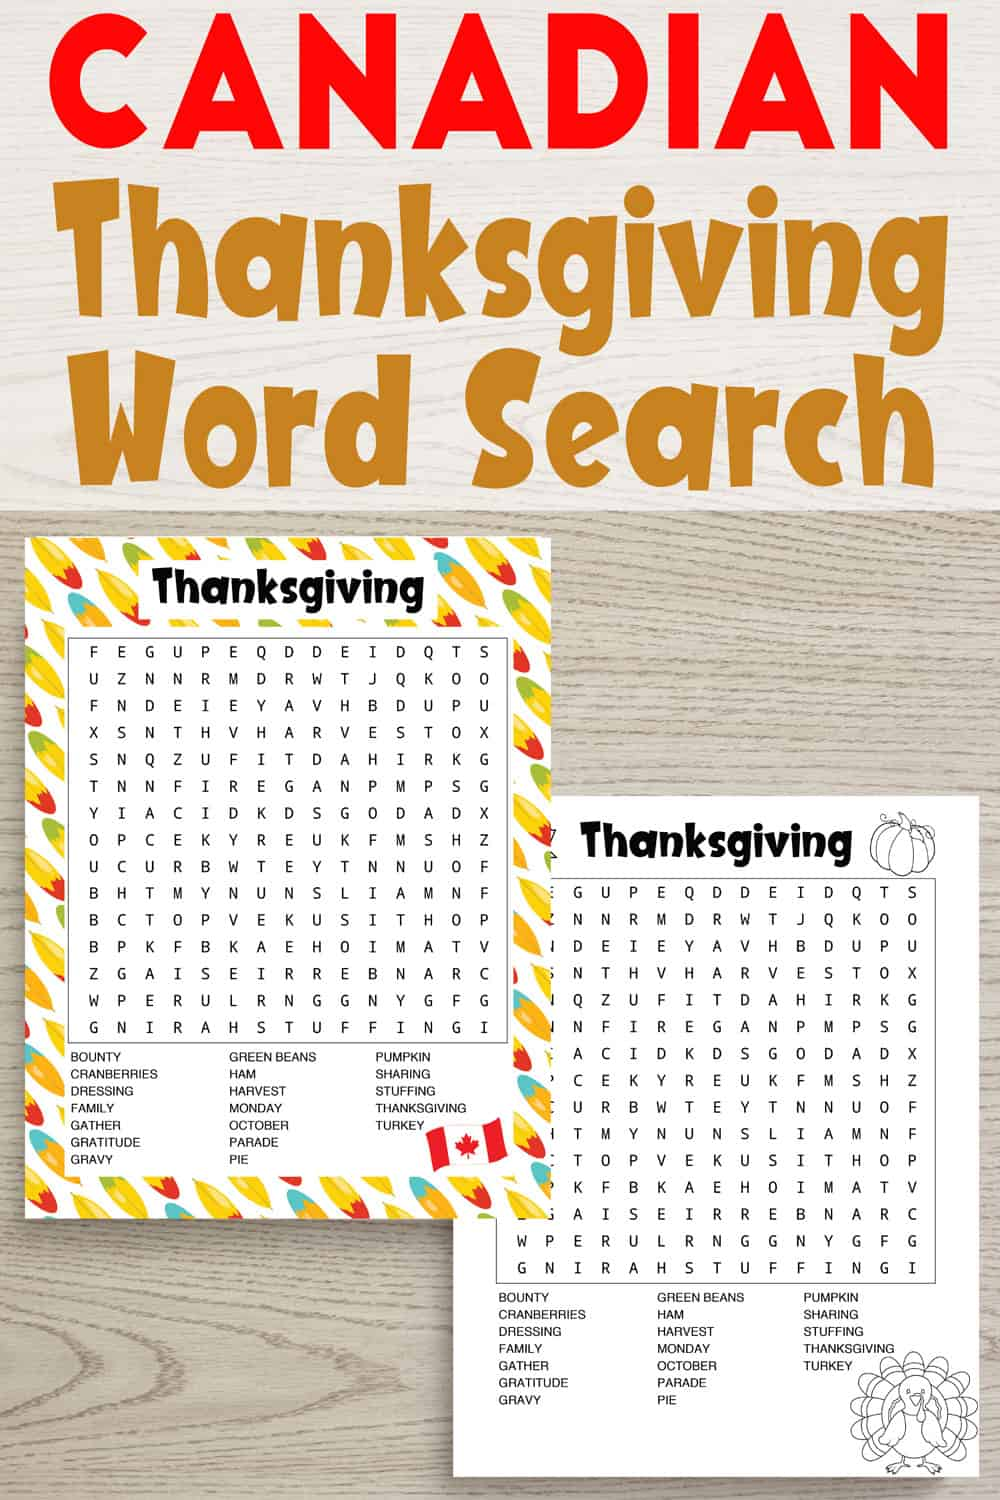 Canadian-thanksgiving-word-search